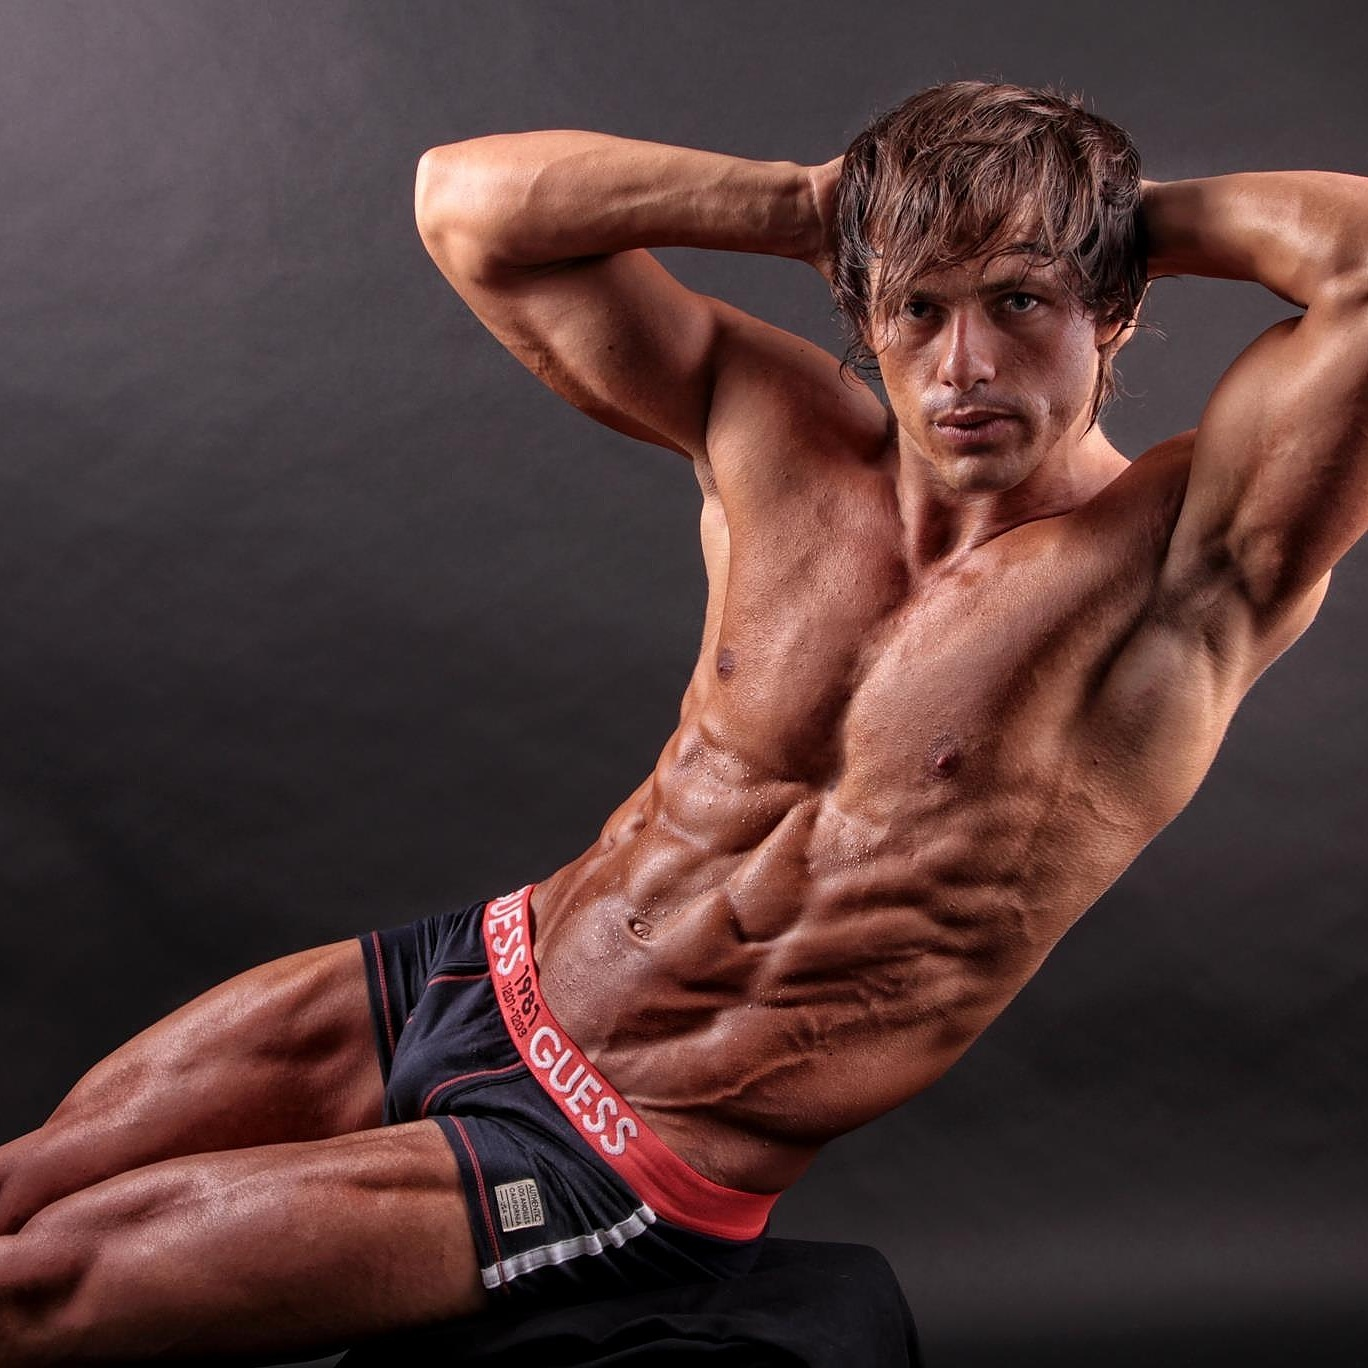 The Art Of Shaping Your Own Body As Installation Aesthetics Of The Fitness Model Ulrichdebalbian